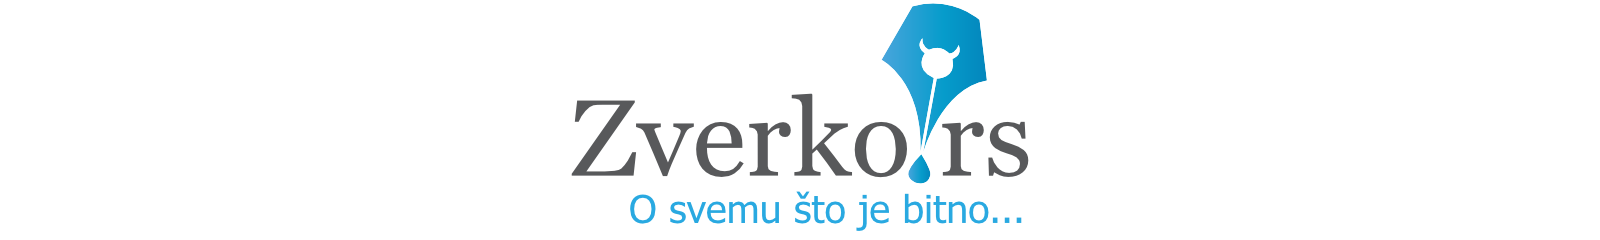 Zverko.rs | Marketing | Biznis | Tehnologija | Ekonomija